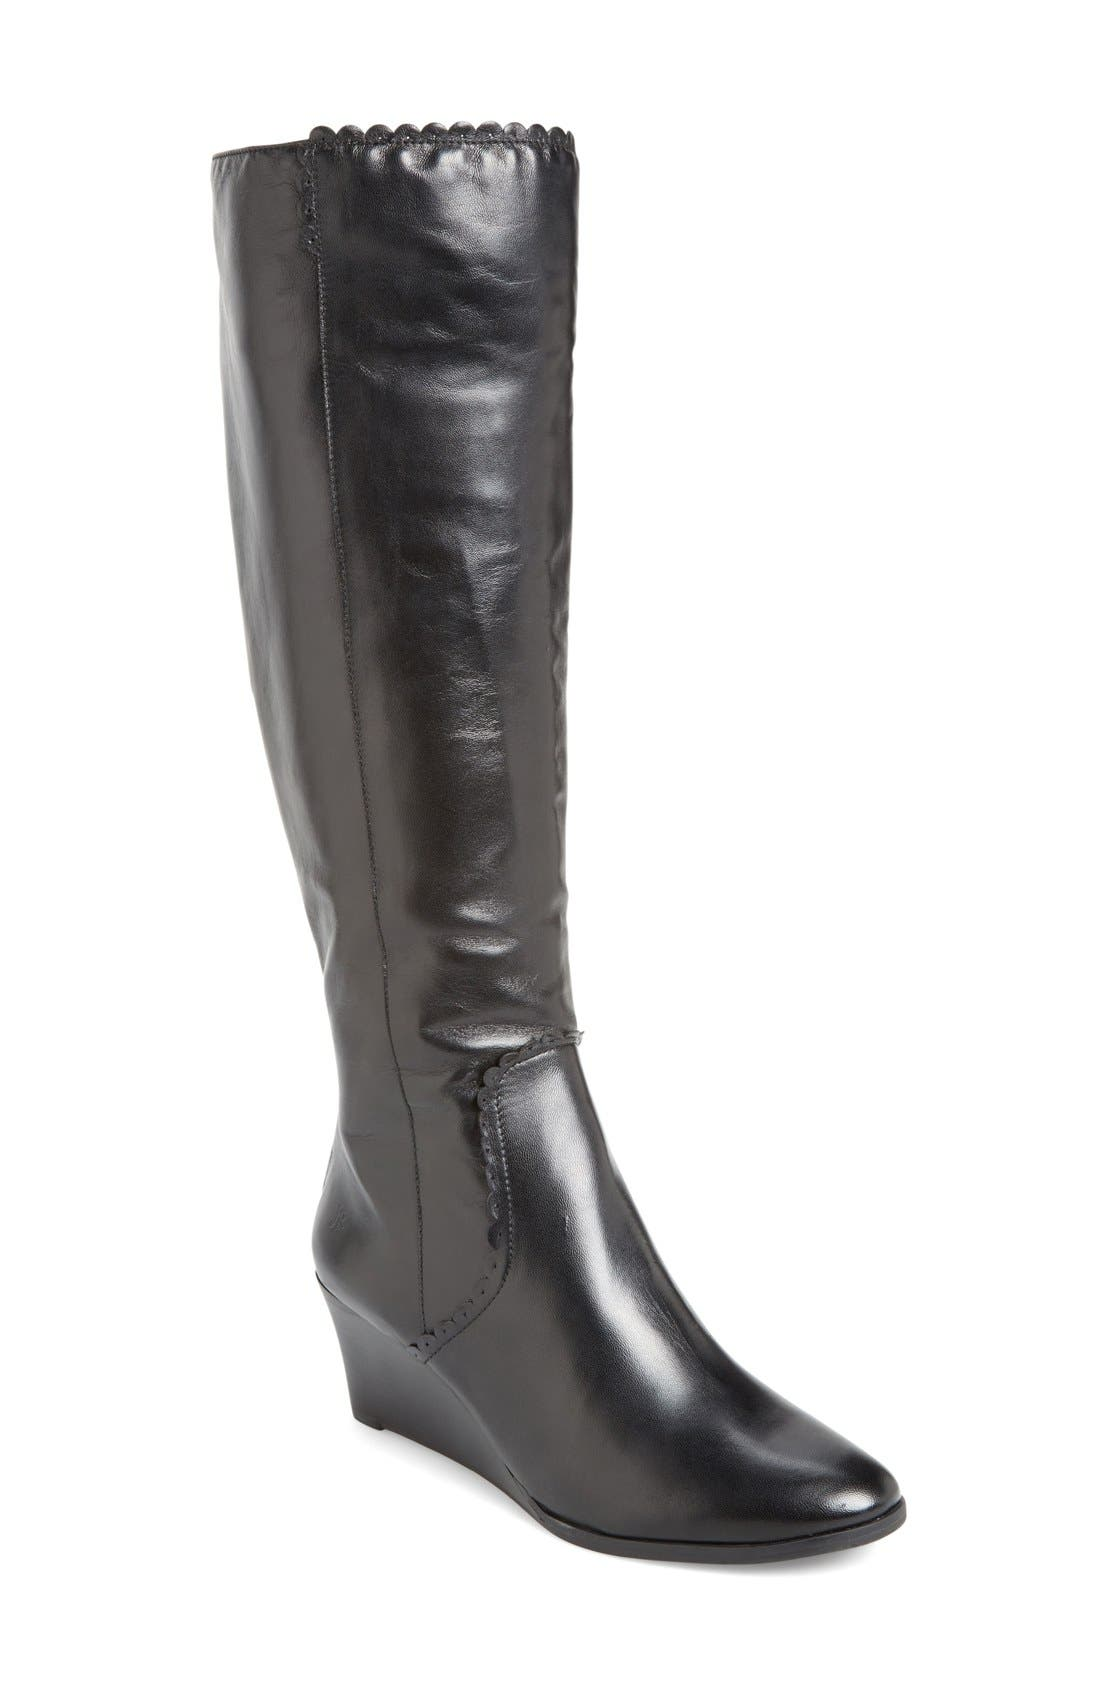 JACK ROGERS 'Mia' Knee High Wedge Boot, Main, color, 001